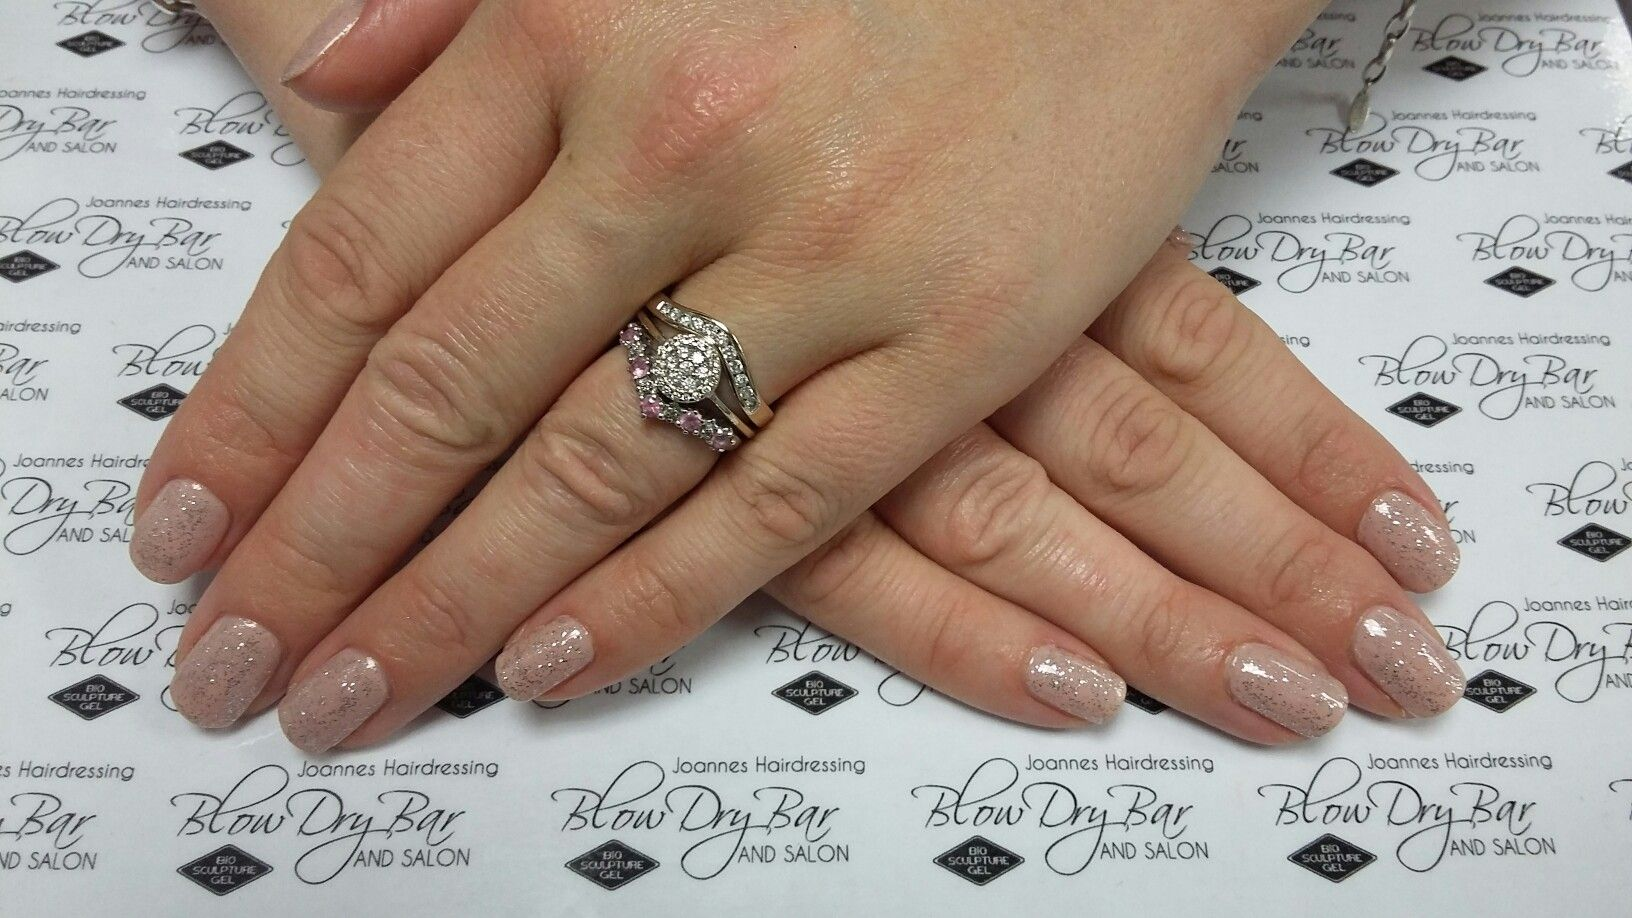 biosculpture gel overlay on natural nails 2093 ivorybeige with